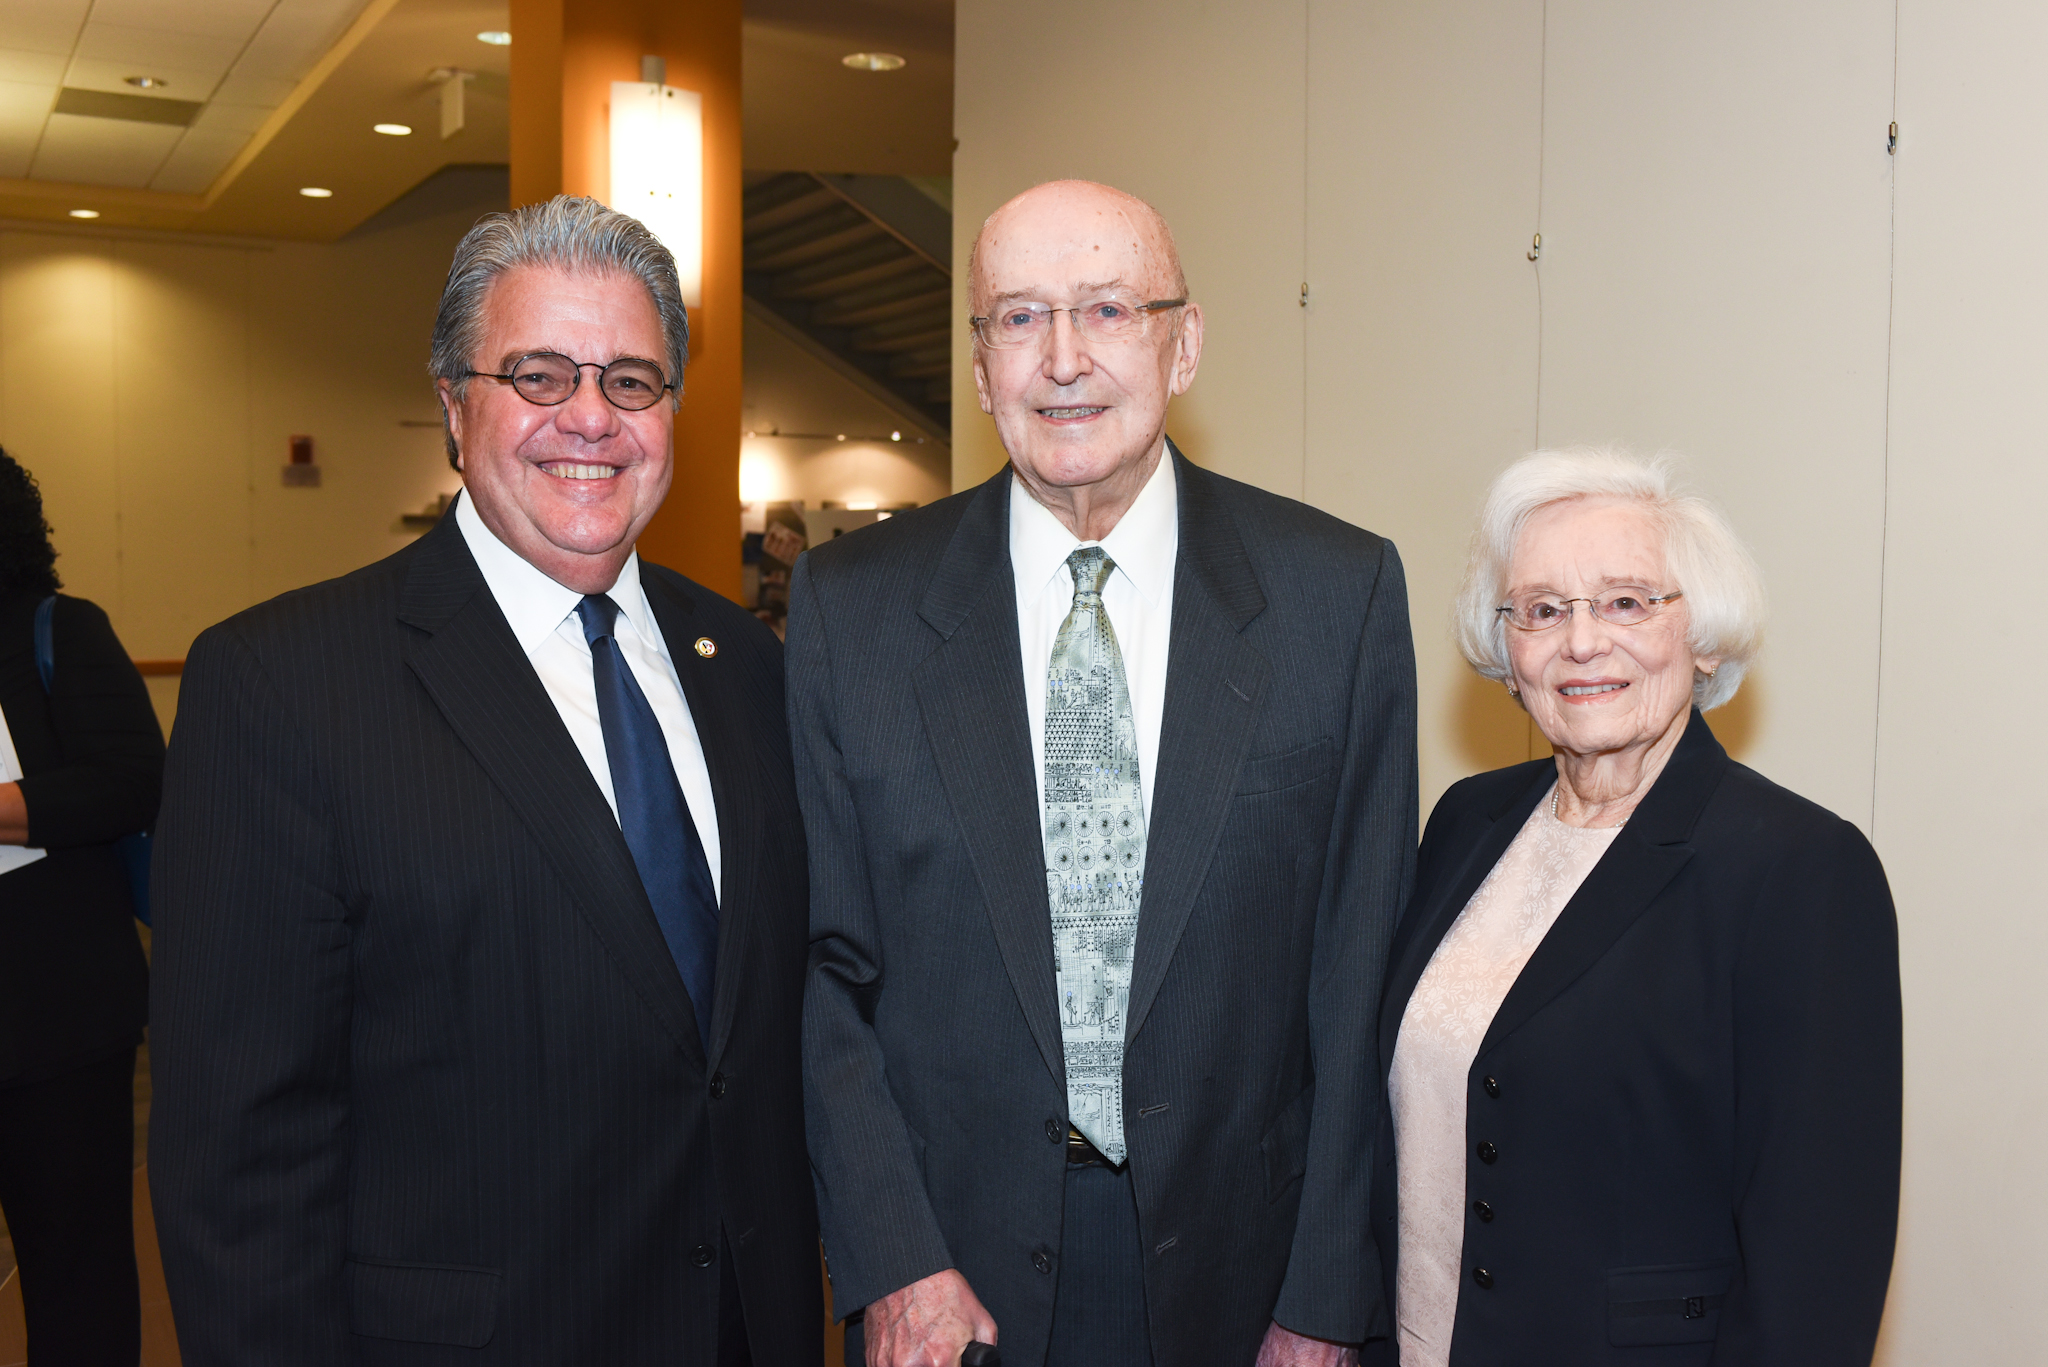 Civic Engagement Symposium - Image 16